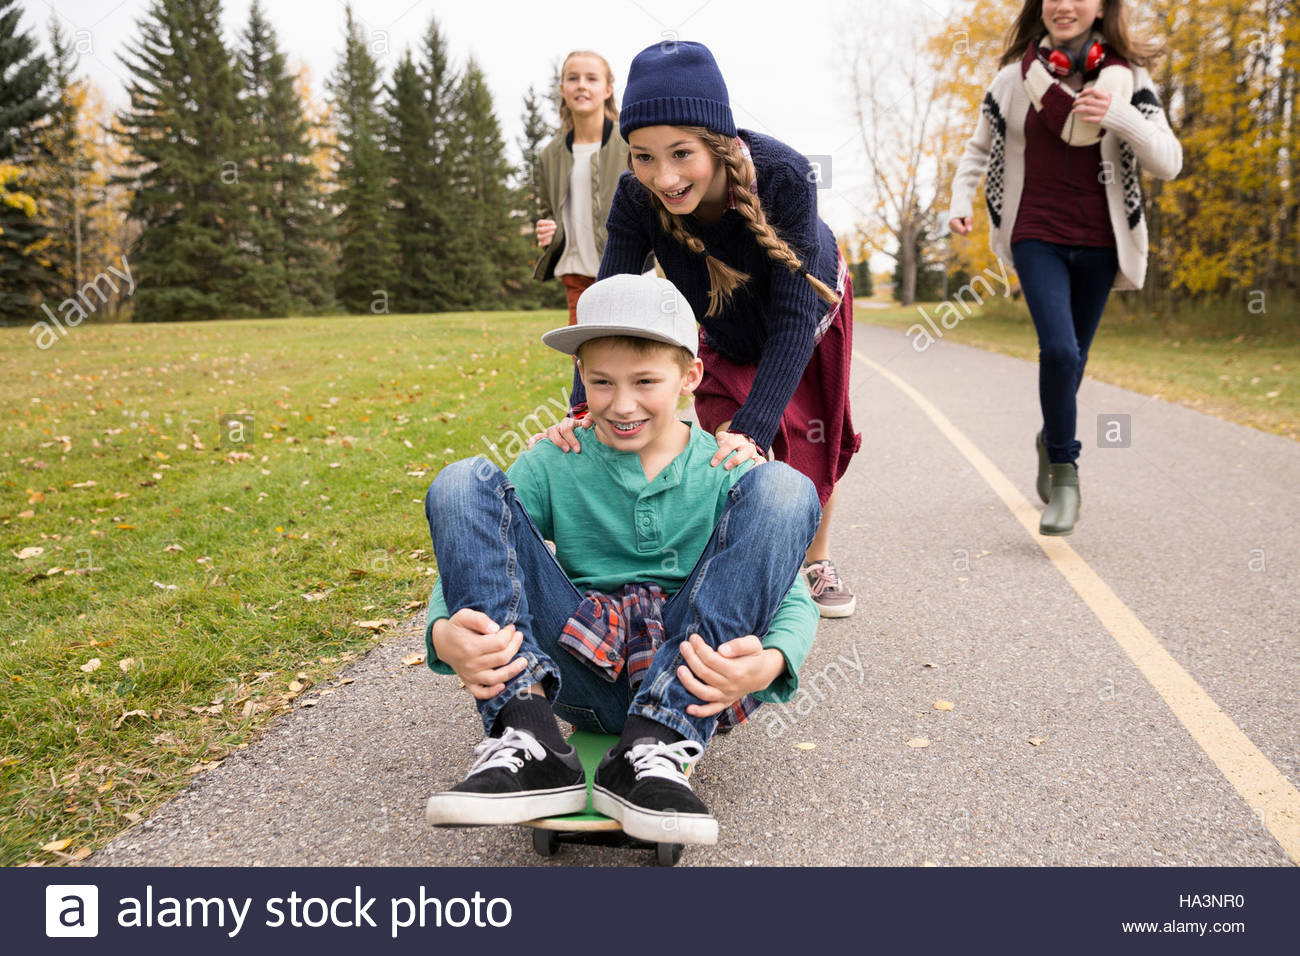 Tween boy and girls skateboarding on path in autumn park - Stock Image